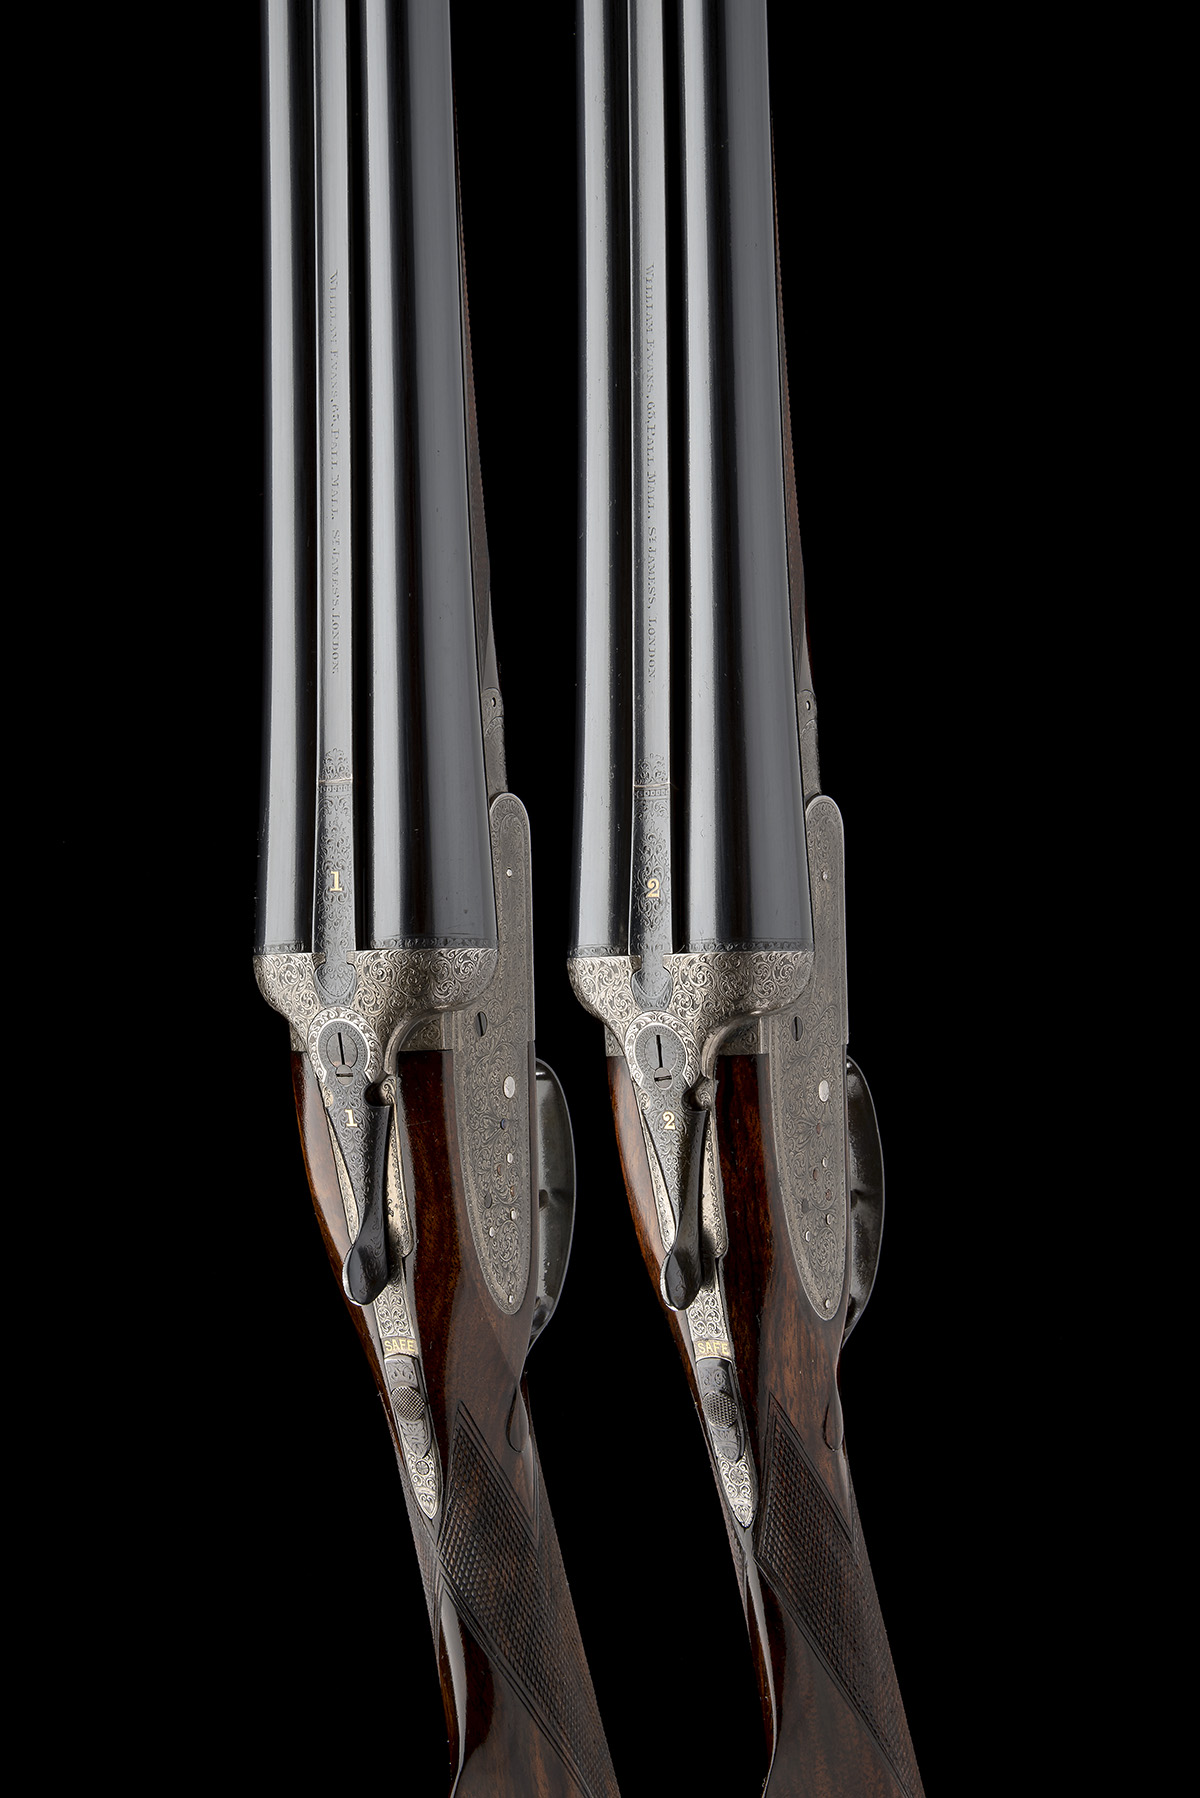 WILLIAM EVANS A PAIR OF 12-BORE SIDELOCK EJECTORS, serial no. 12995 / 6, for 1923, 30in. nitro - Image 4 of 12